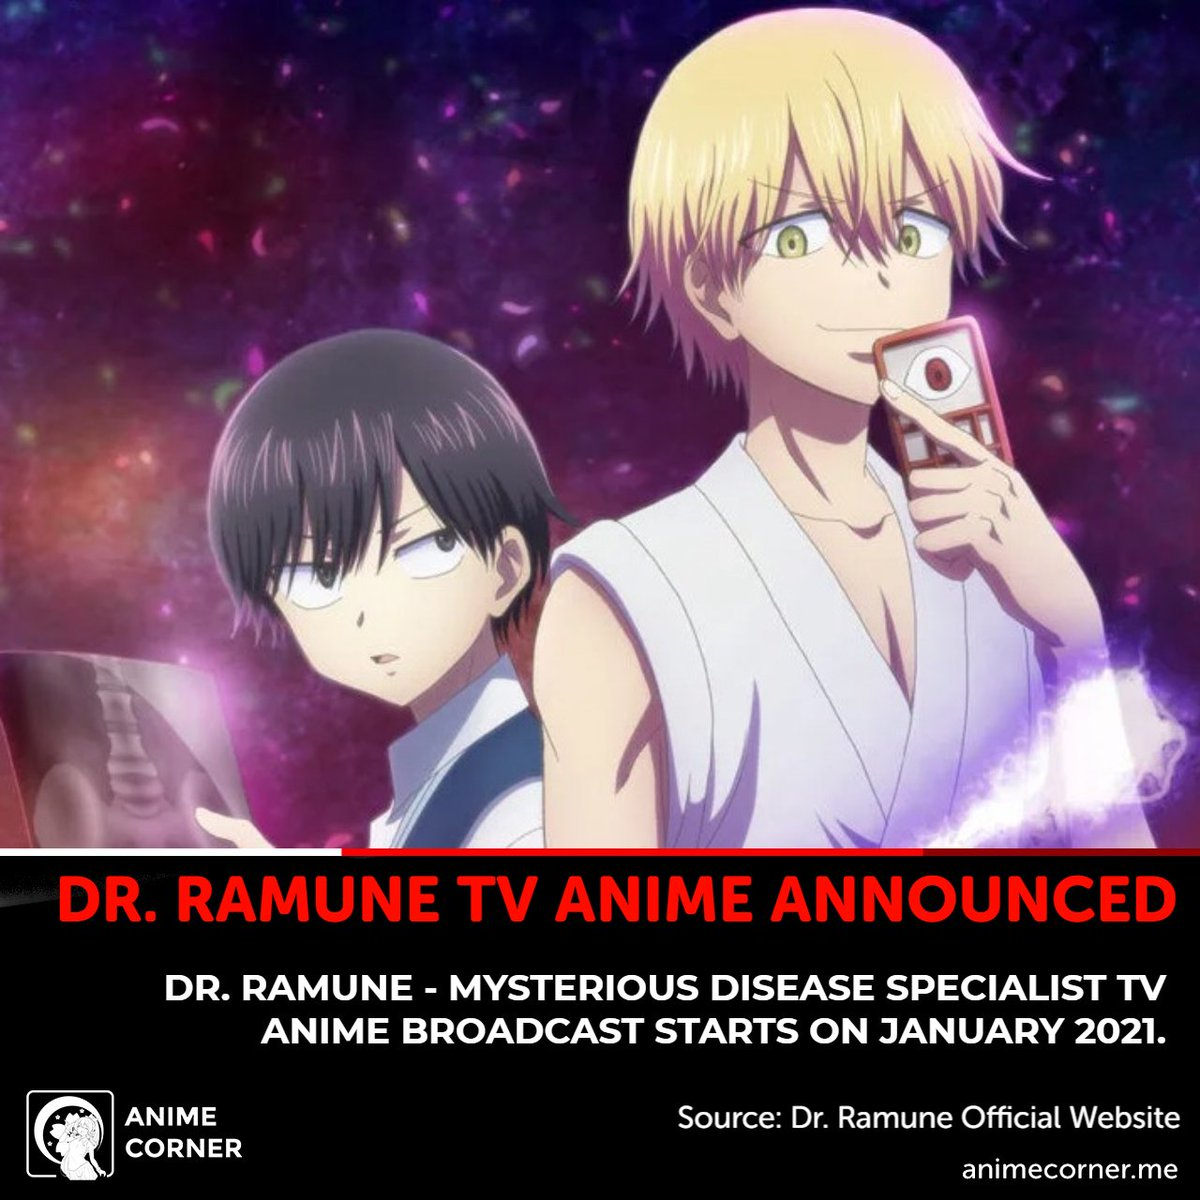 Anime Corner On Twitter Dr Ramune Mysterious Disease Specialist Tv Anime Announced For 2021 Read More Https T Co Oo8blvrs6q